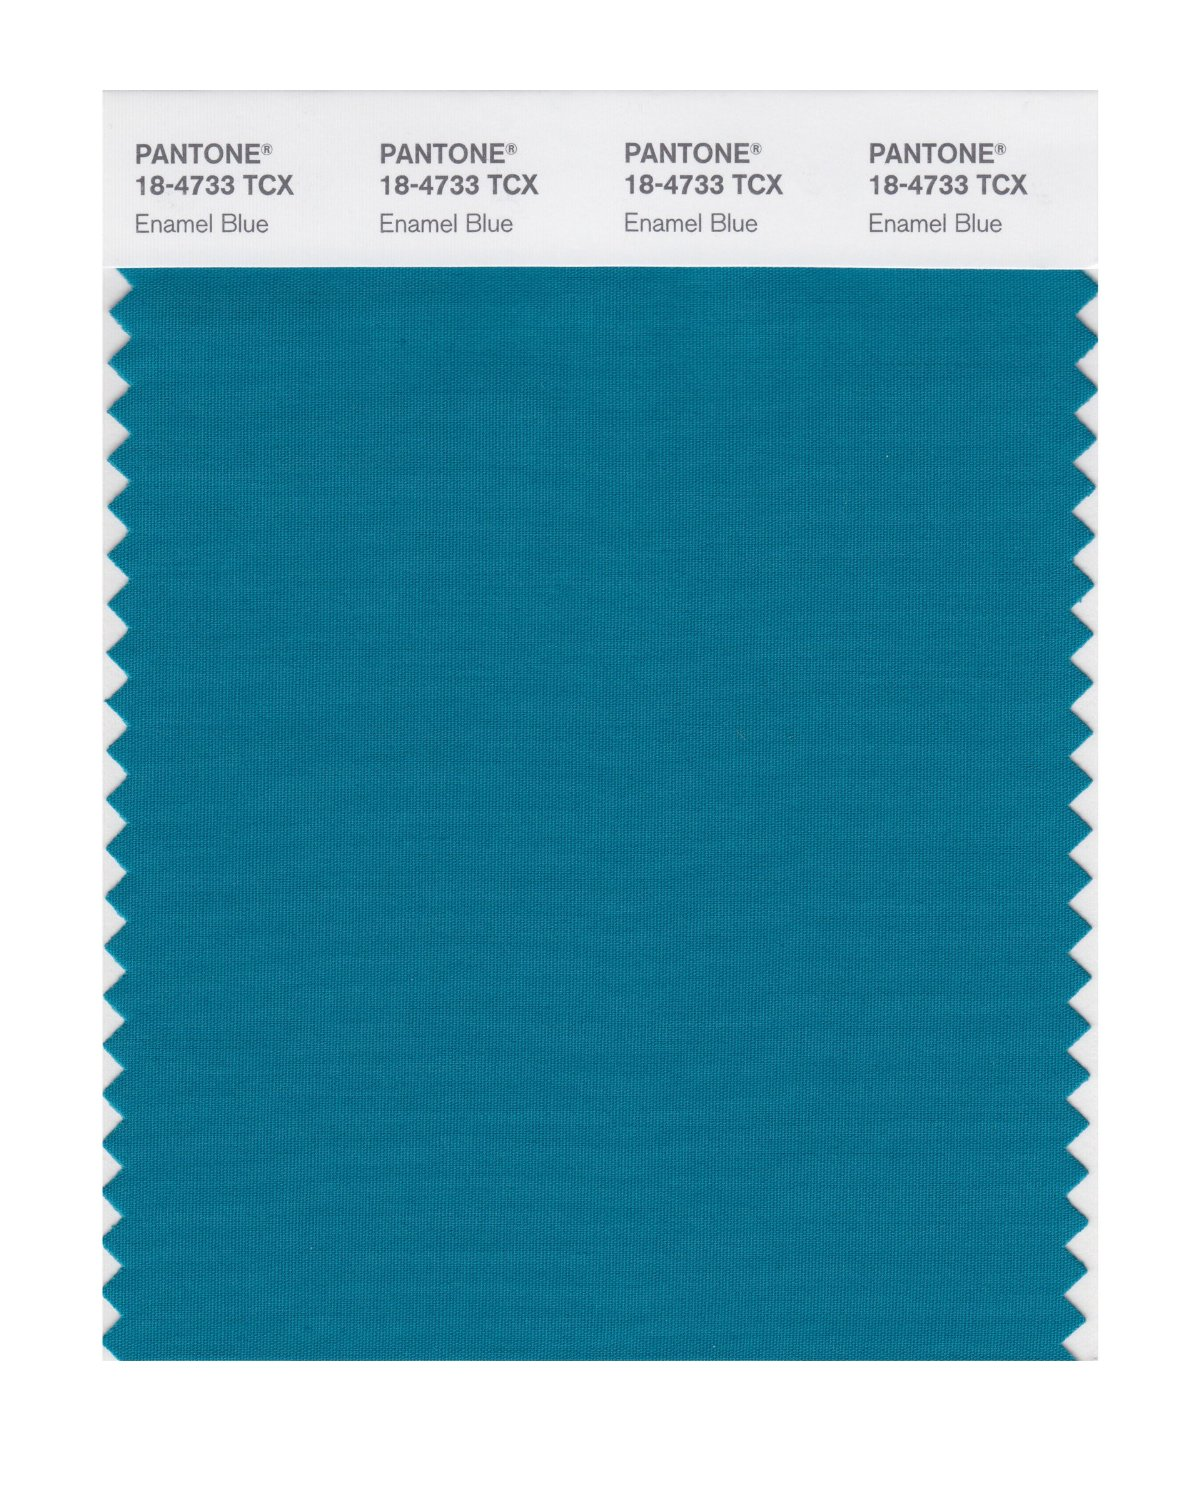 Pantone Smart Swatch 18-4733 Enamel Blue